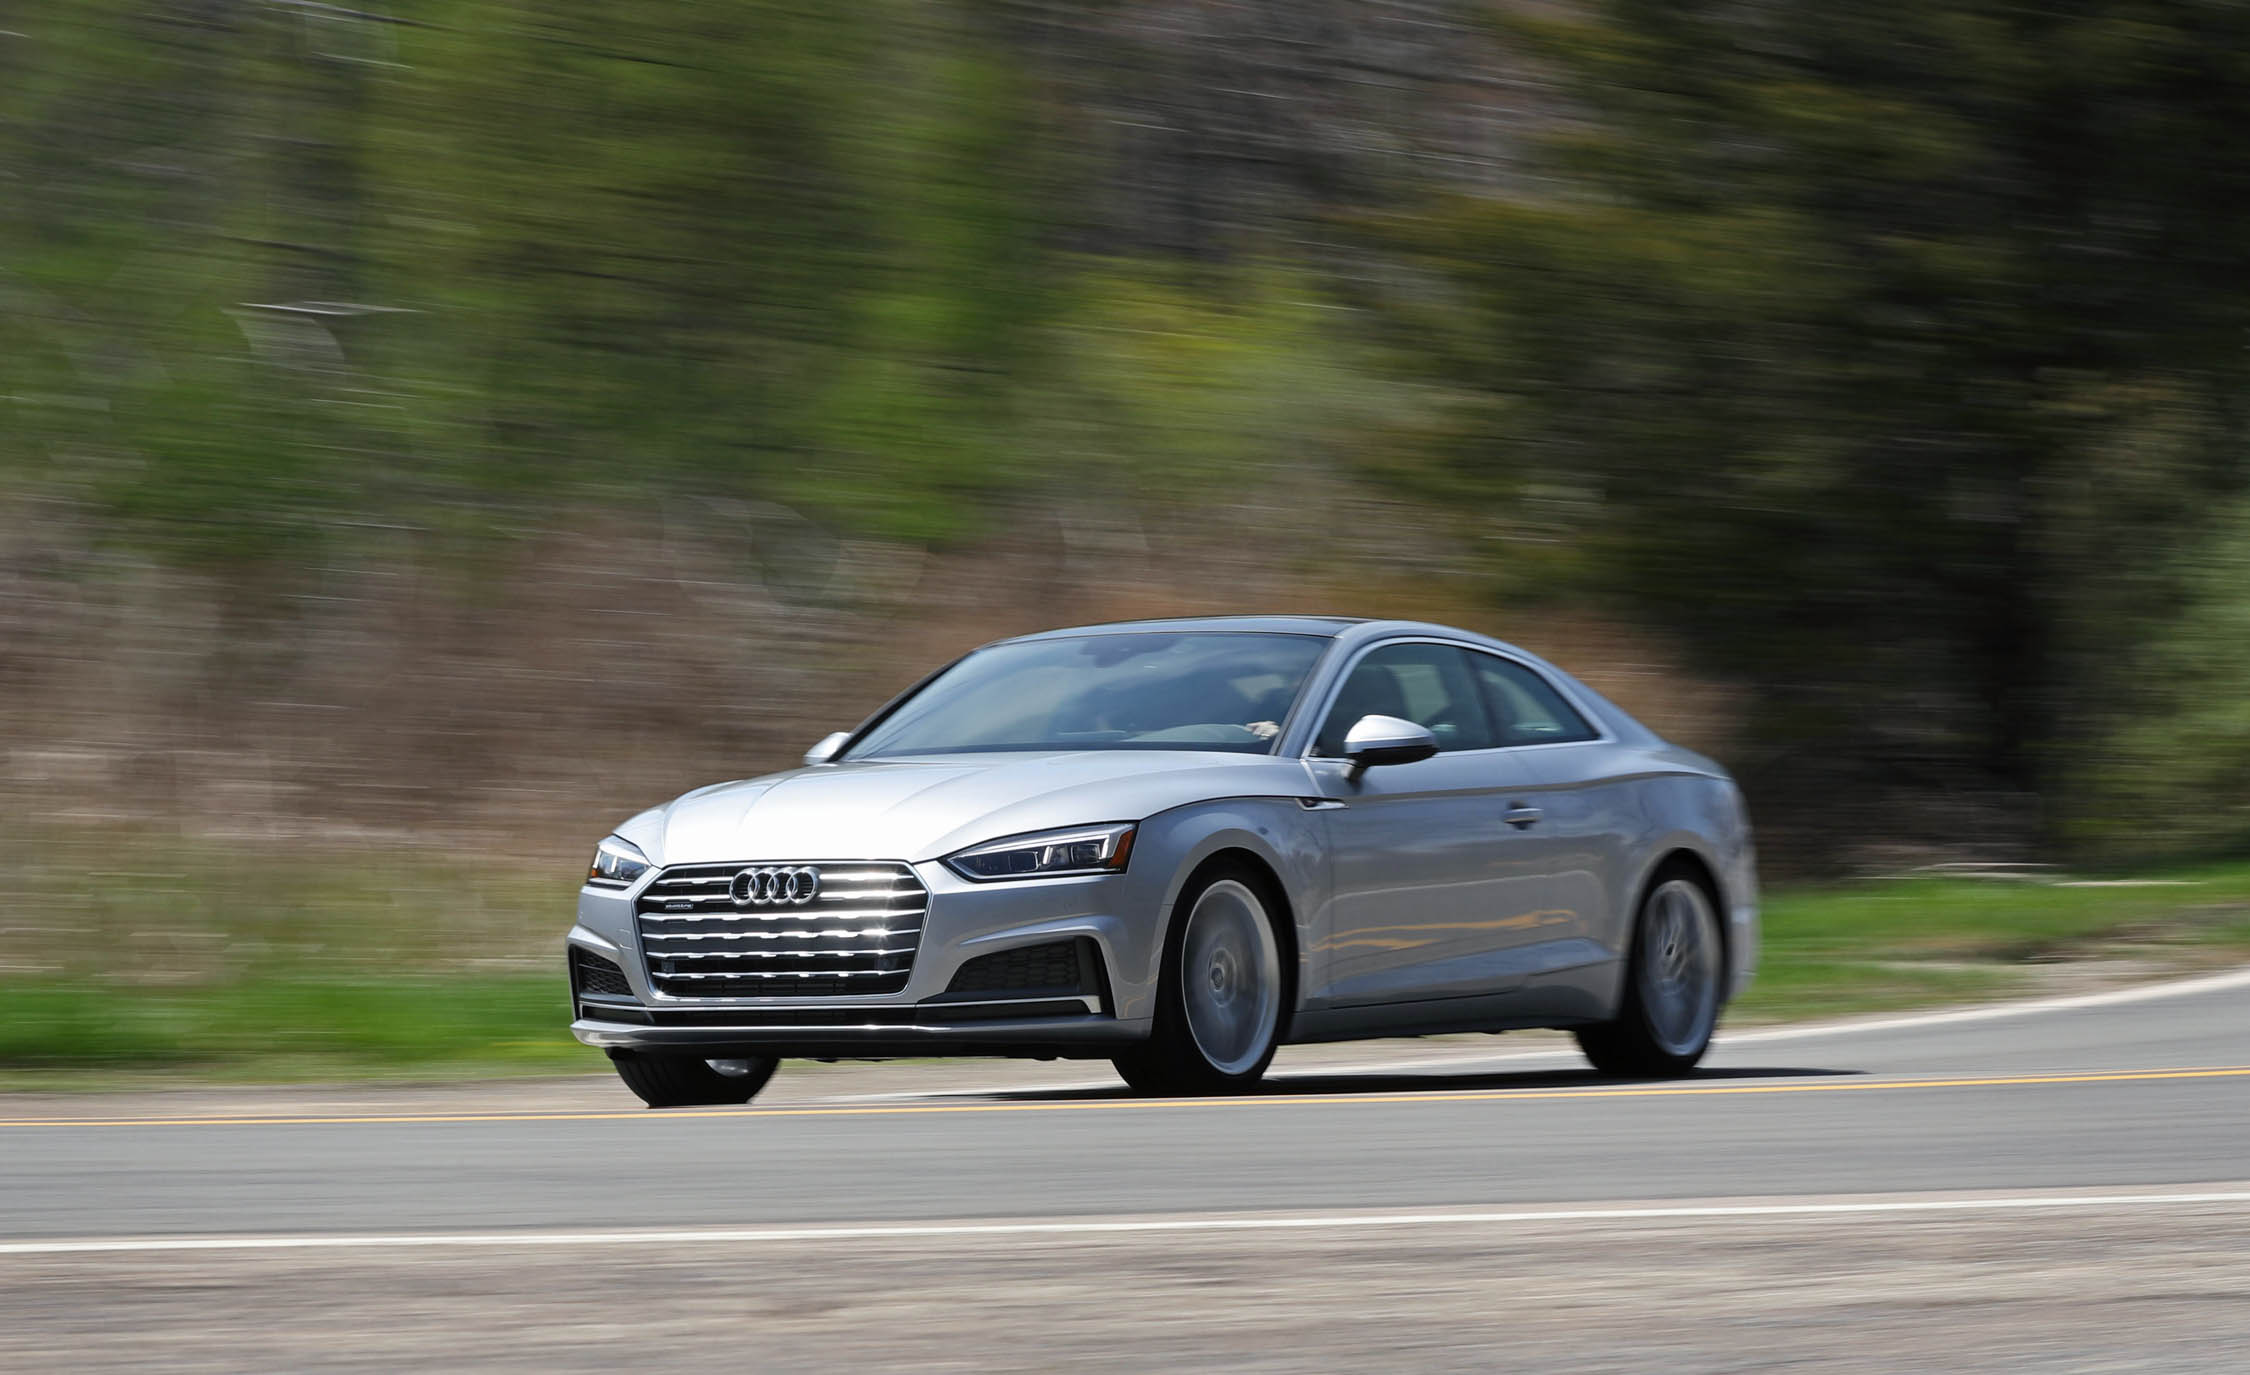 2018 Audi A5 Coupe Silver Metallic (Photo 11 of 50)